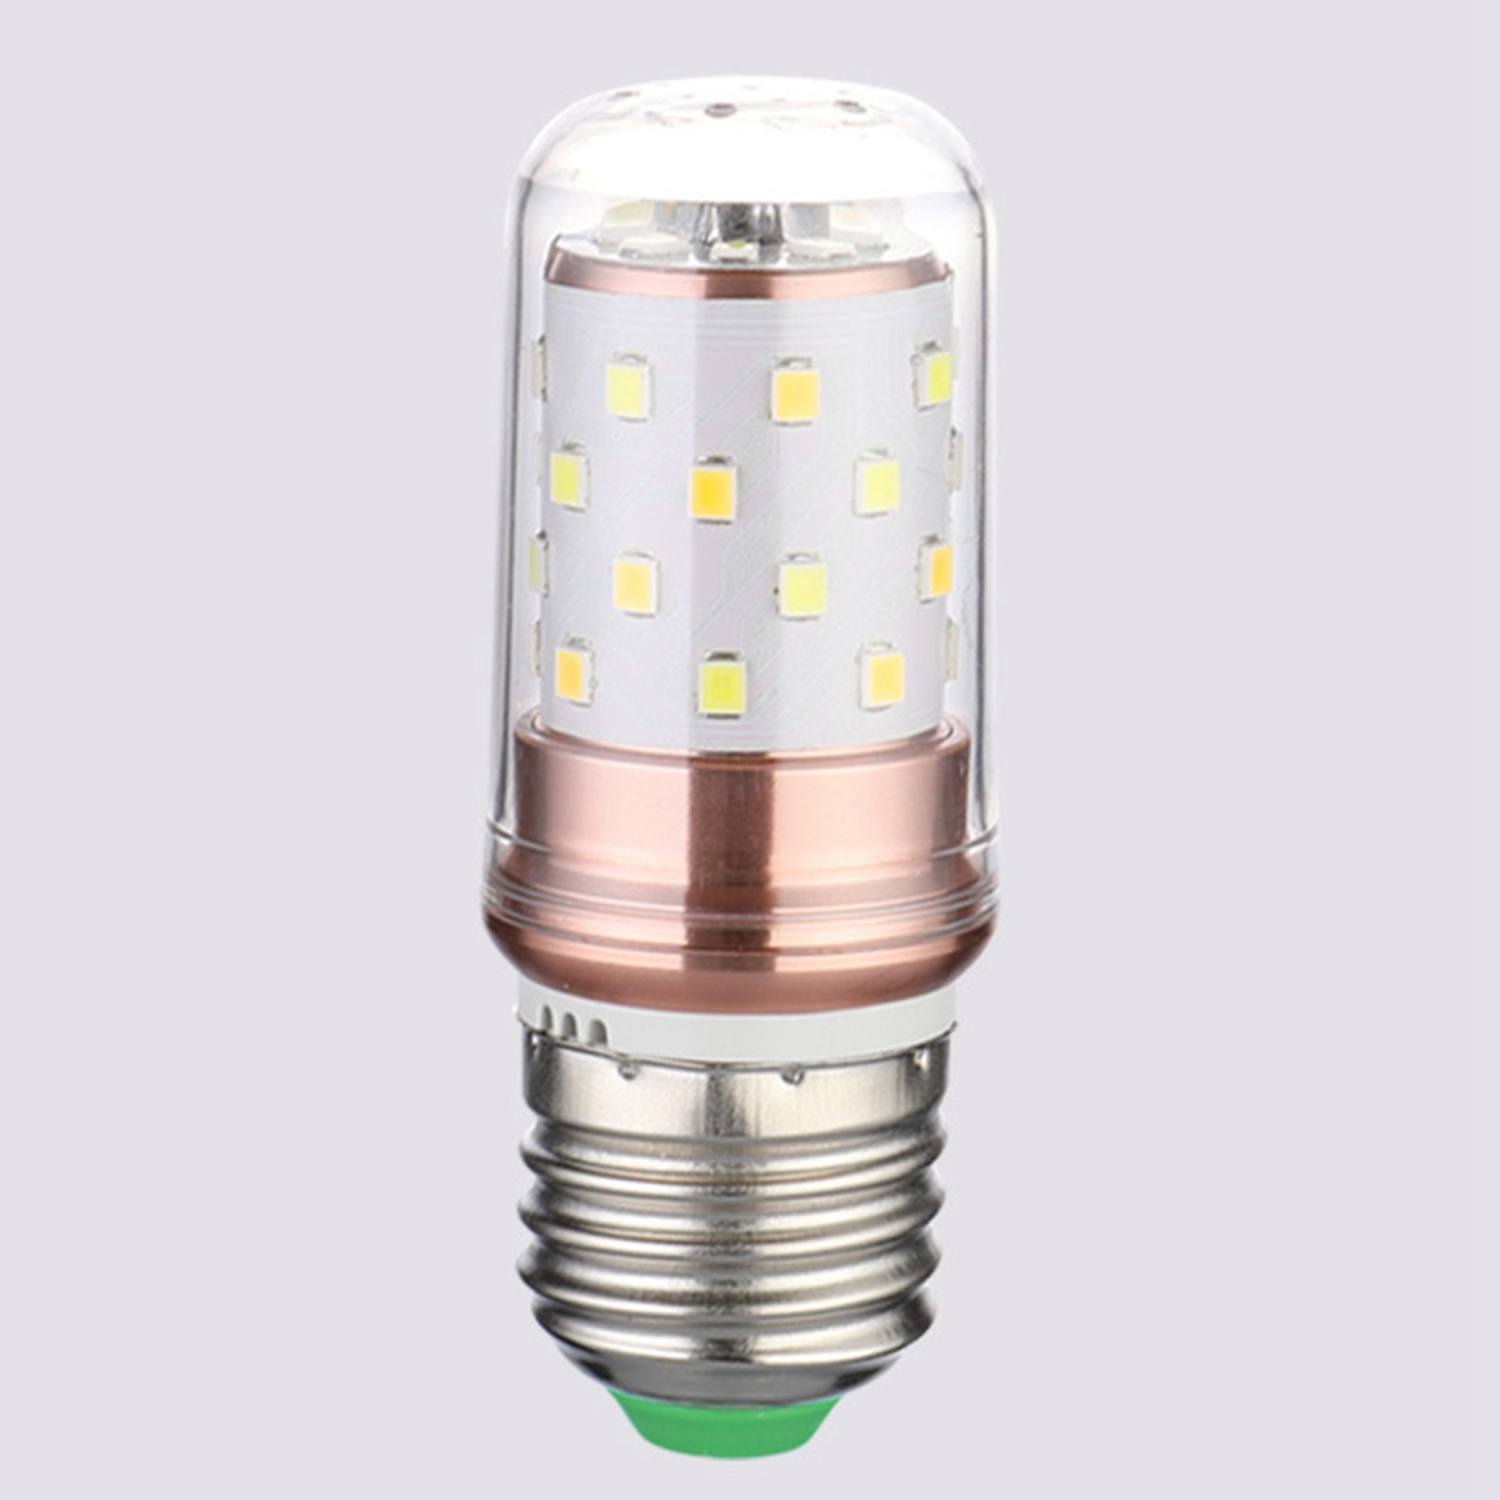 3 Color Temperatures Integrated SMD LED Corn Lamp AC110V-220V Warm White High Light Energy Conservation Small LED Light Bulb